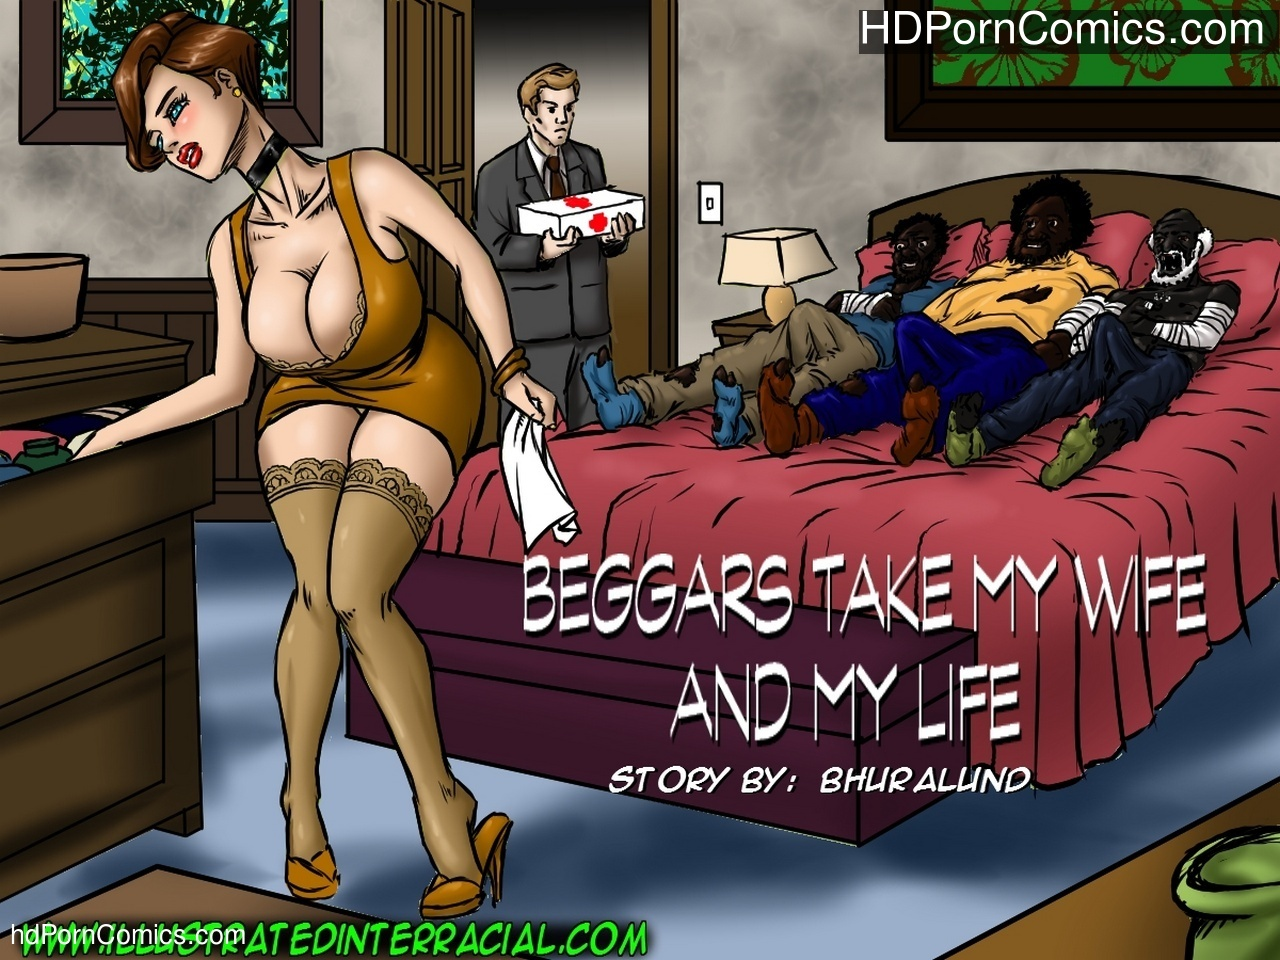 Beggars Take My Wife And My Life Sex Comic